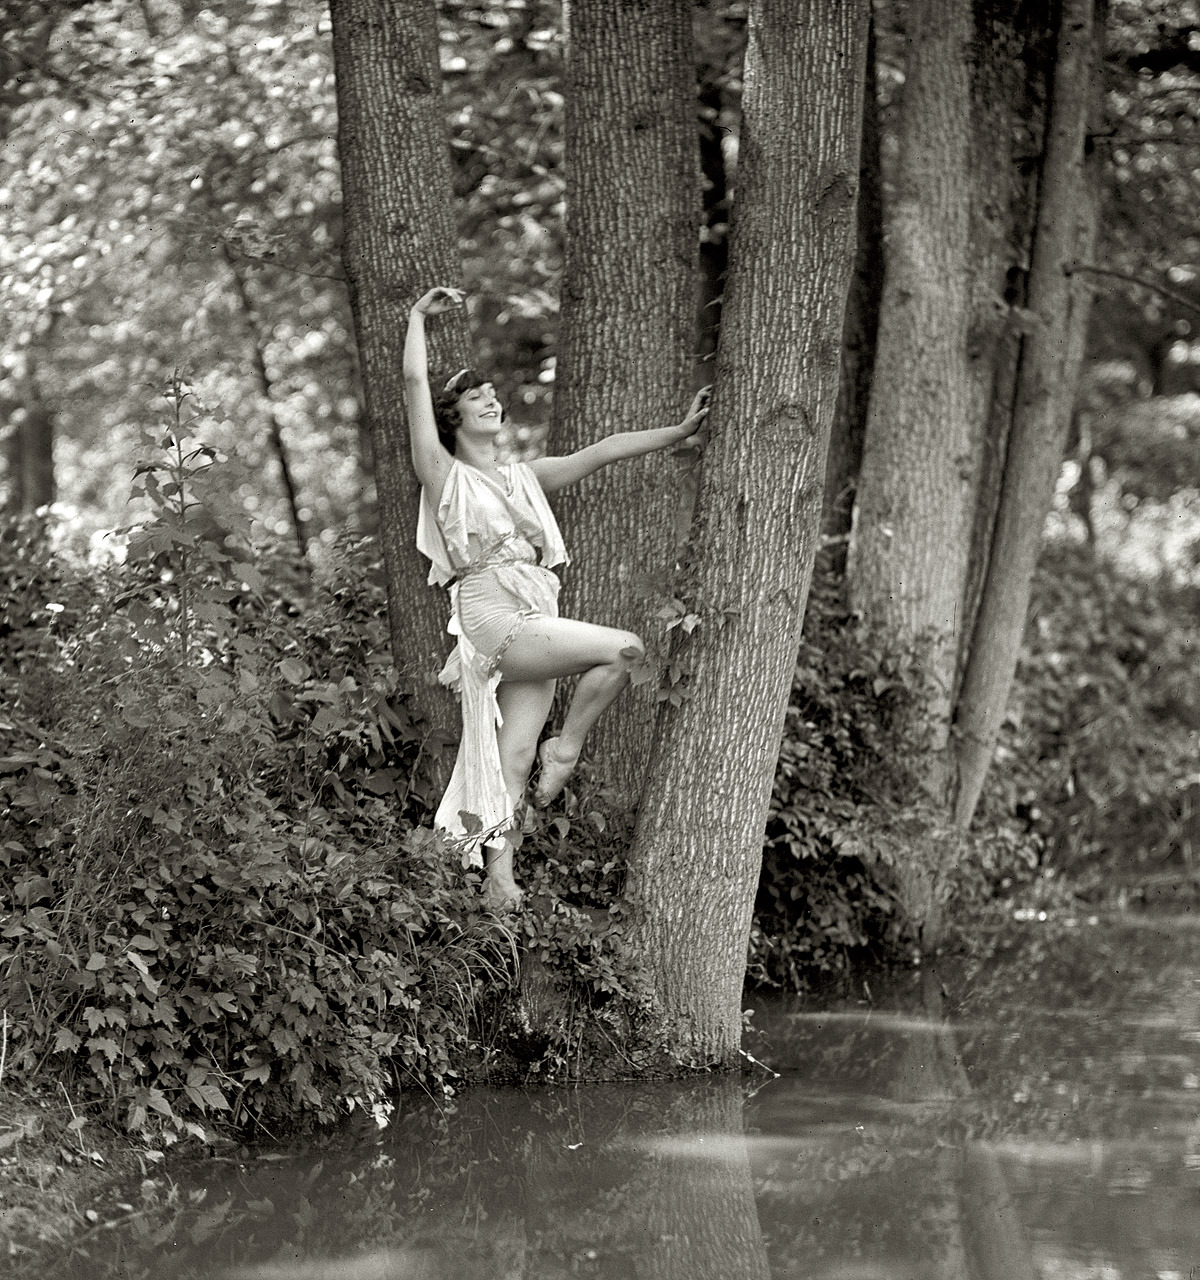 Water Nymph, 1925 (via)